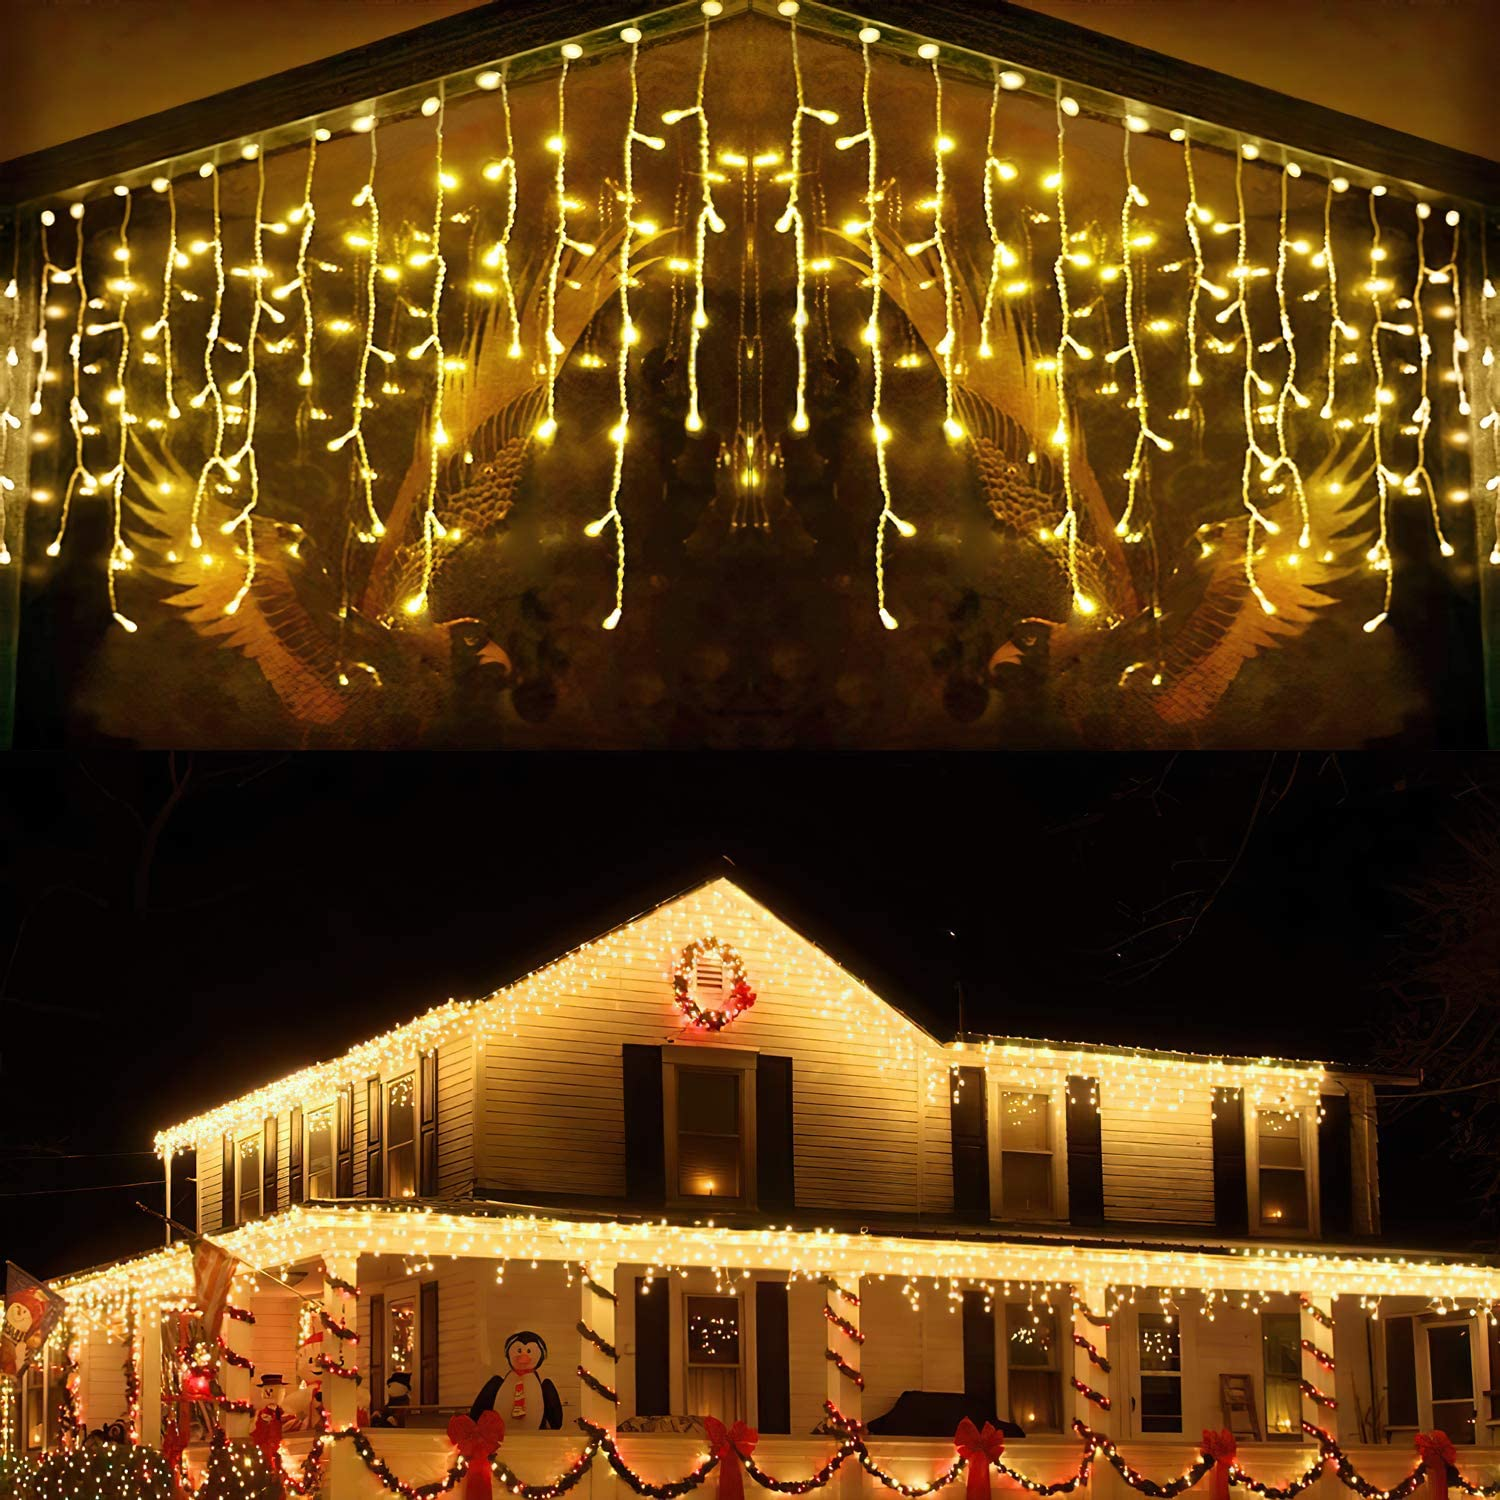 LANFU LED Warm White Icicle Lights,33ft,400LEDs,8Modes,Curtain Fairy String Light,Clear Wire LED String Decor for Indoor Outdoor Wall Decorations/Party Backdrop/Christmas/Easter/Halloween/Thanksgiving